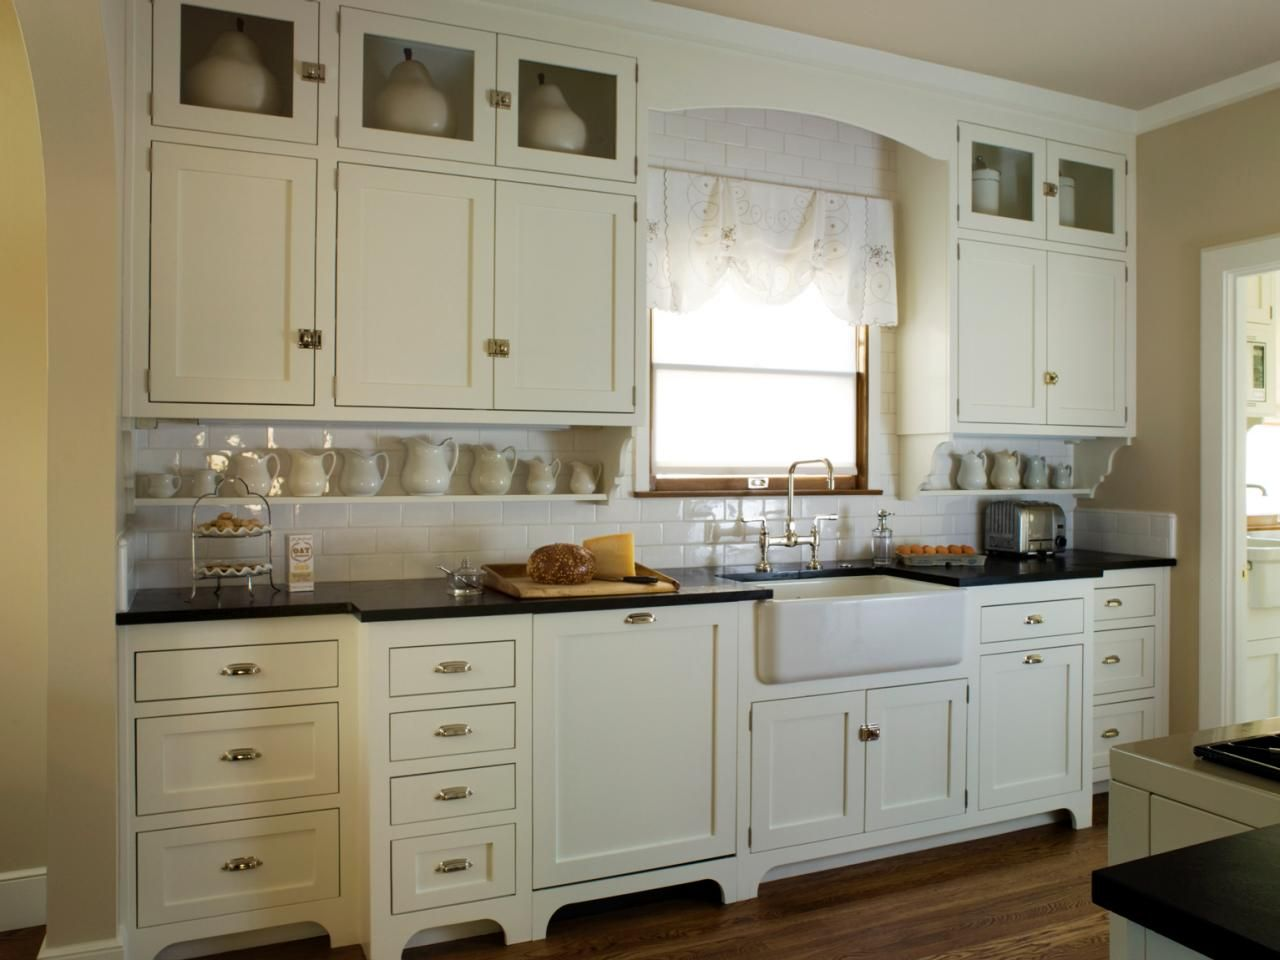 Antique white cabinets kitchen - This Quaint Cottage Kitchen Features Antique White Shaker Cabinets Black Countertops And A White Subway